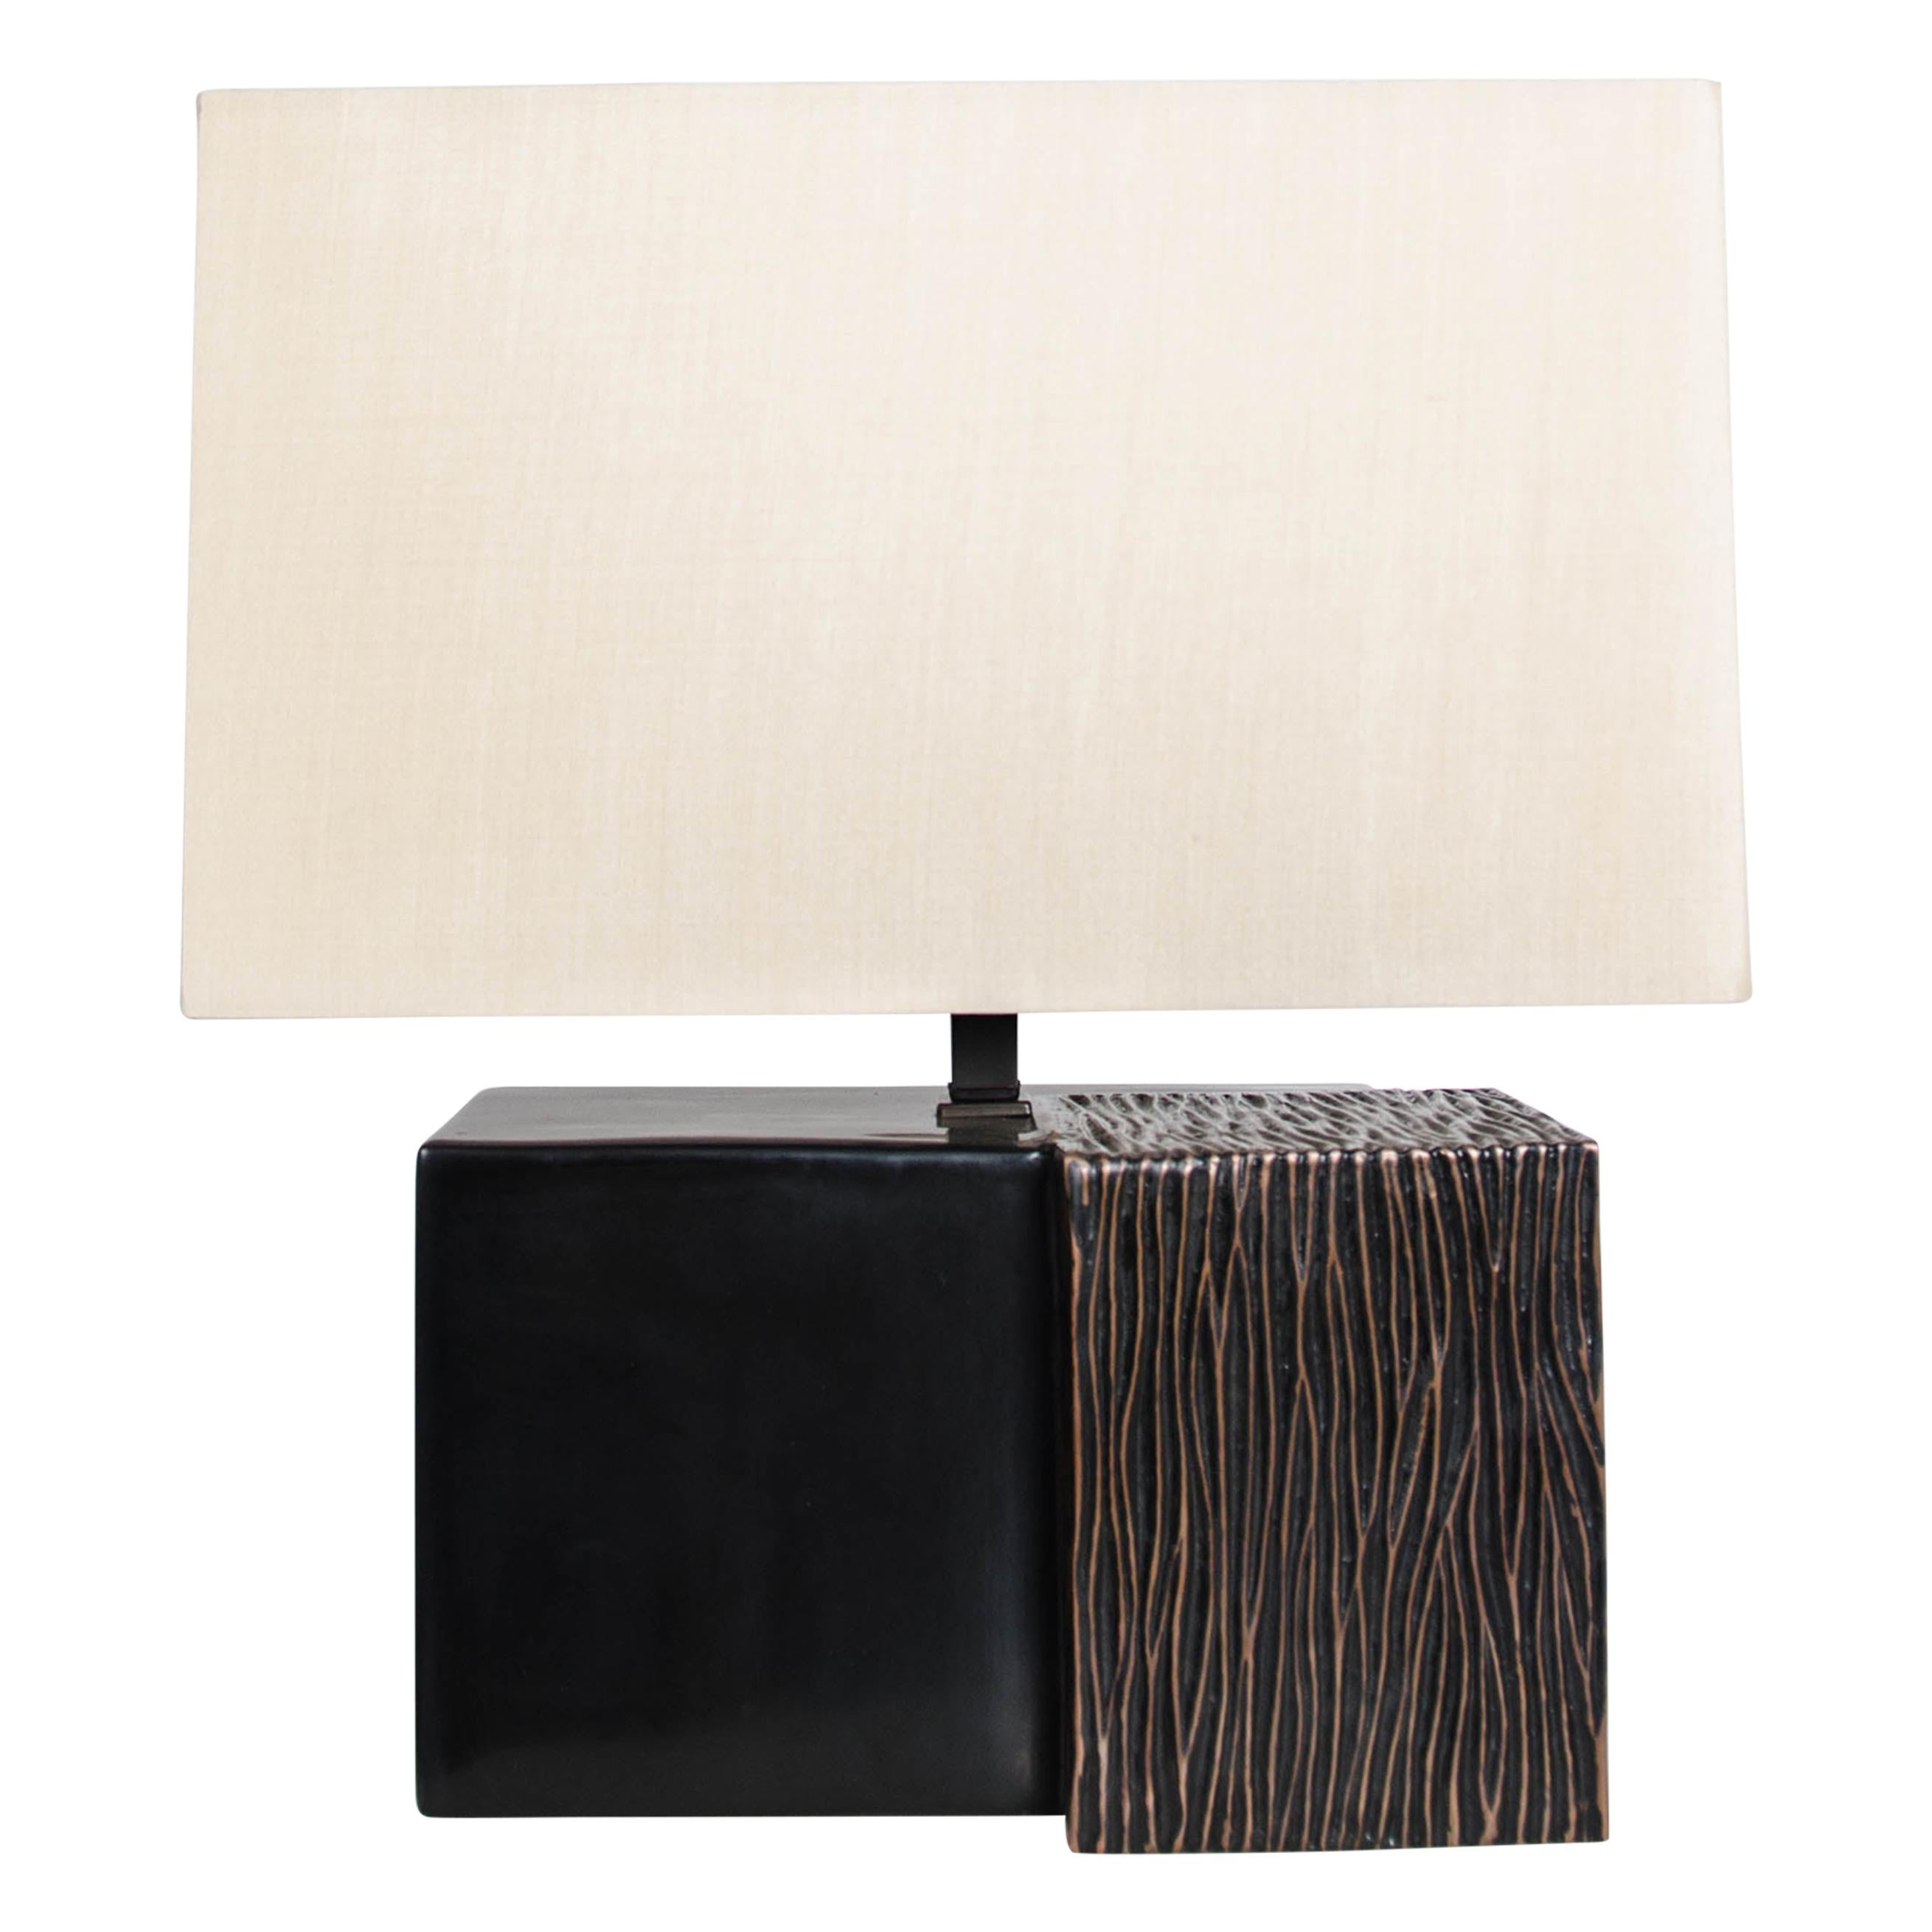 Hand Repoussé Pleats Double Cube Table Lamp in Black Lacquer by Robert Kuo